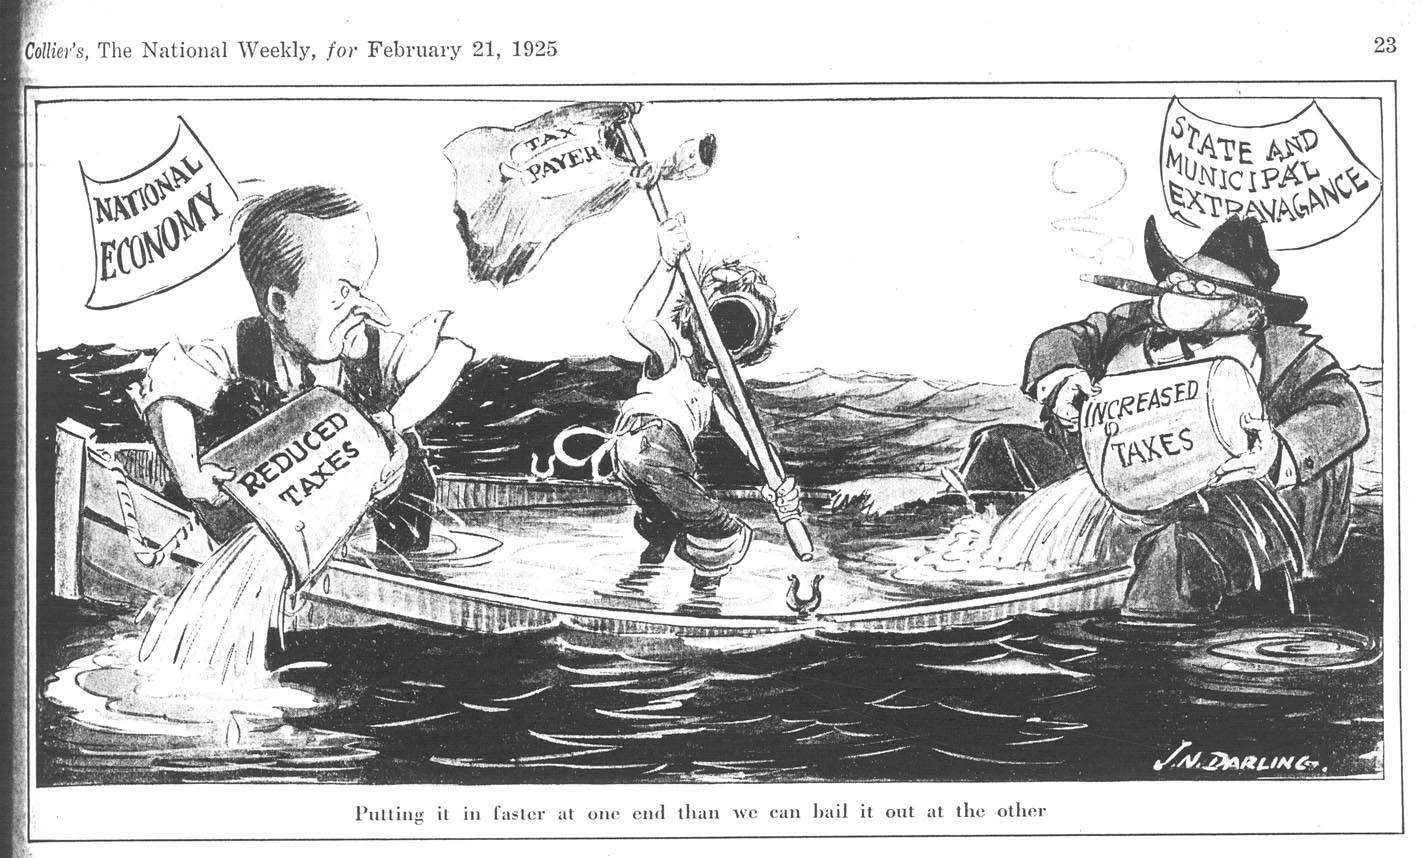 """Cartoon by """"Ding"""" Darling, """"Putting it in faster at one end than we can bail it our at the other,"""" The Des Moines Register, February 21, 1925. Courtesy of the University of Iowa."""